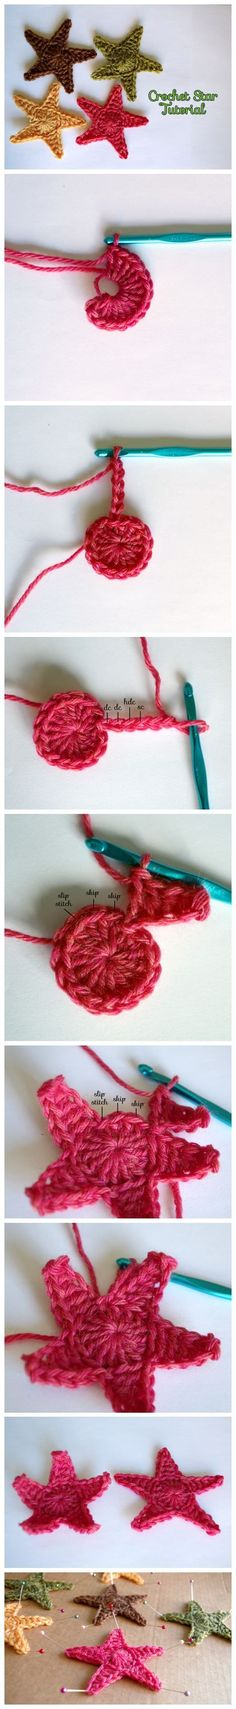 How to make a crochet star